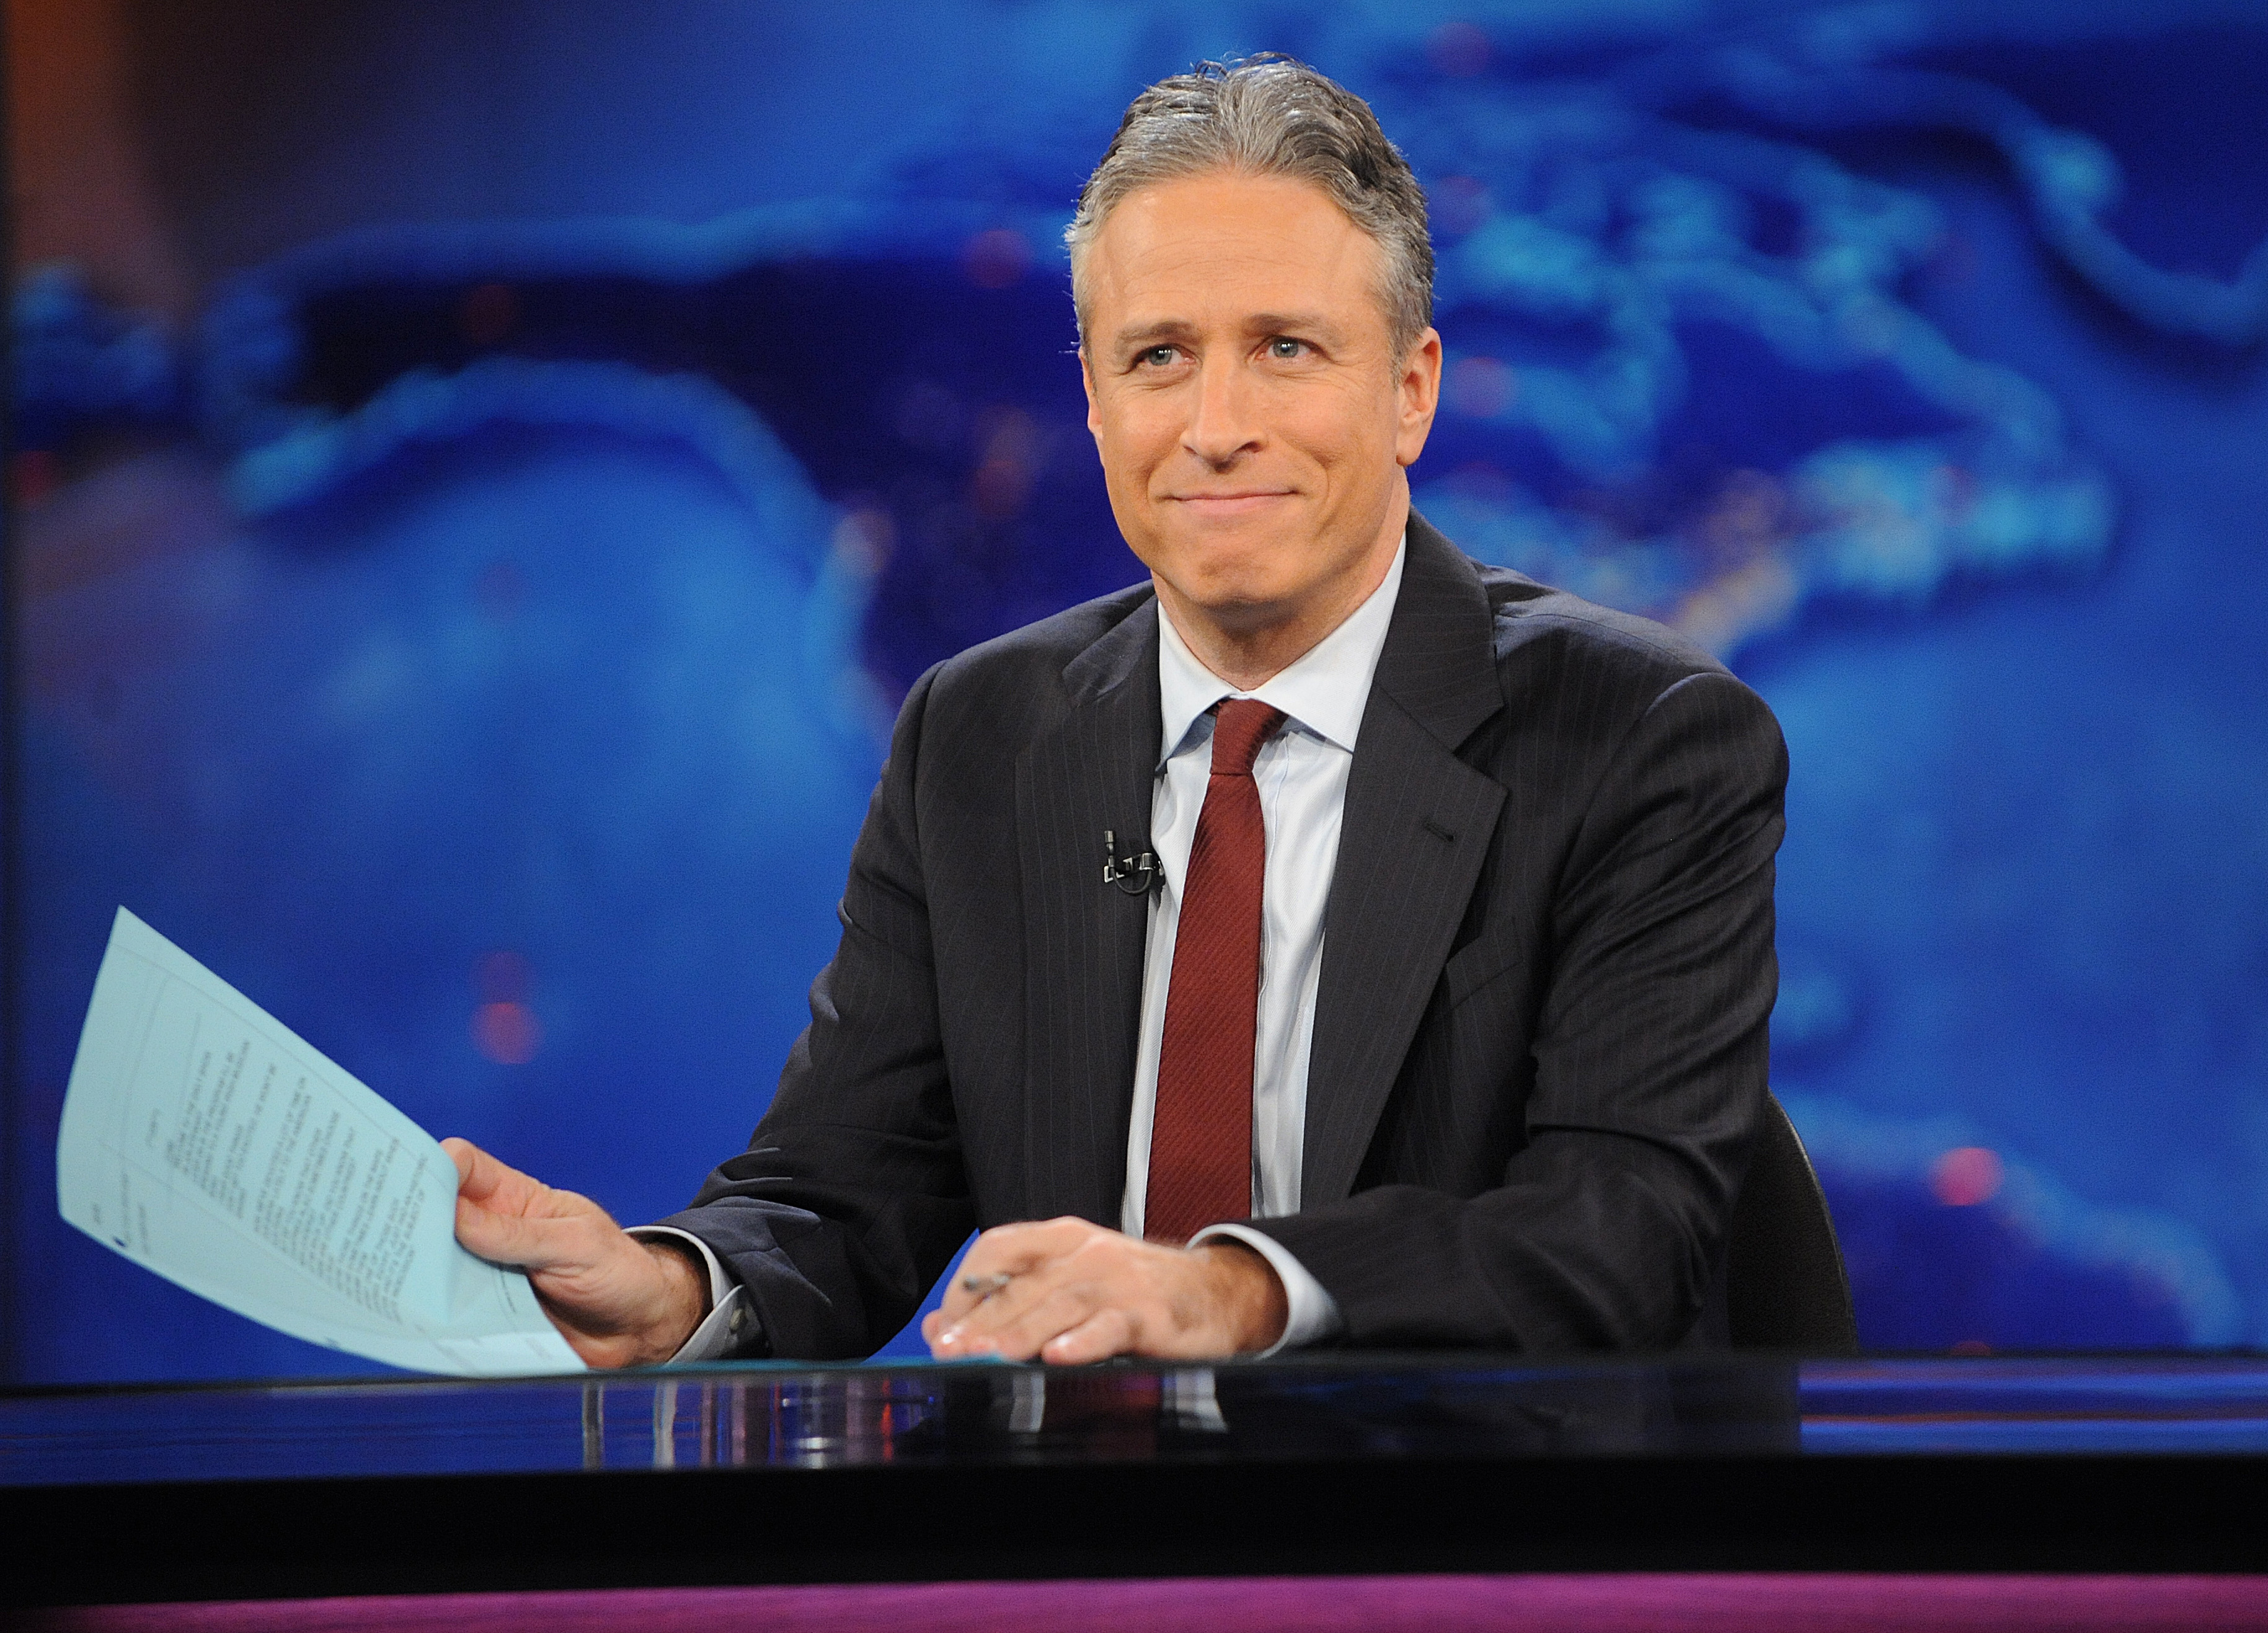 Jon Stewart during a taping of The Daily Show with Jon Stewart in 2011.